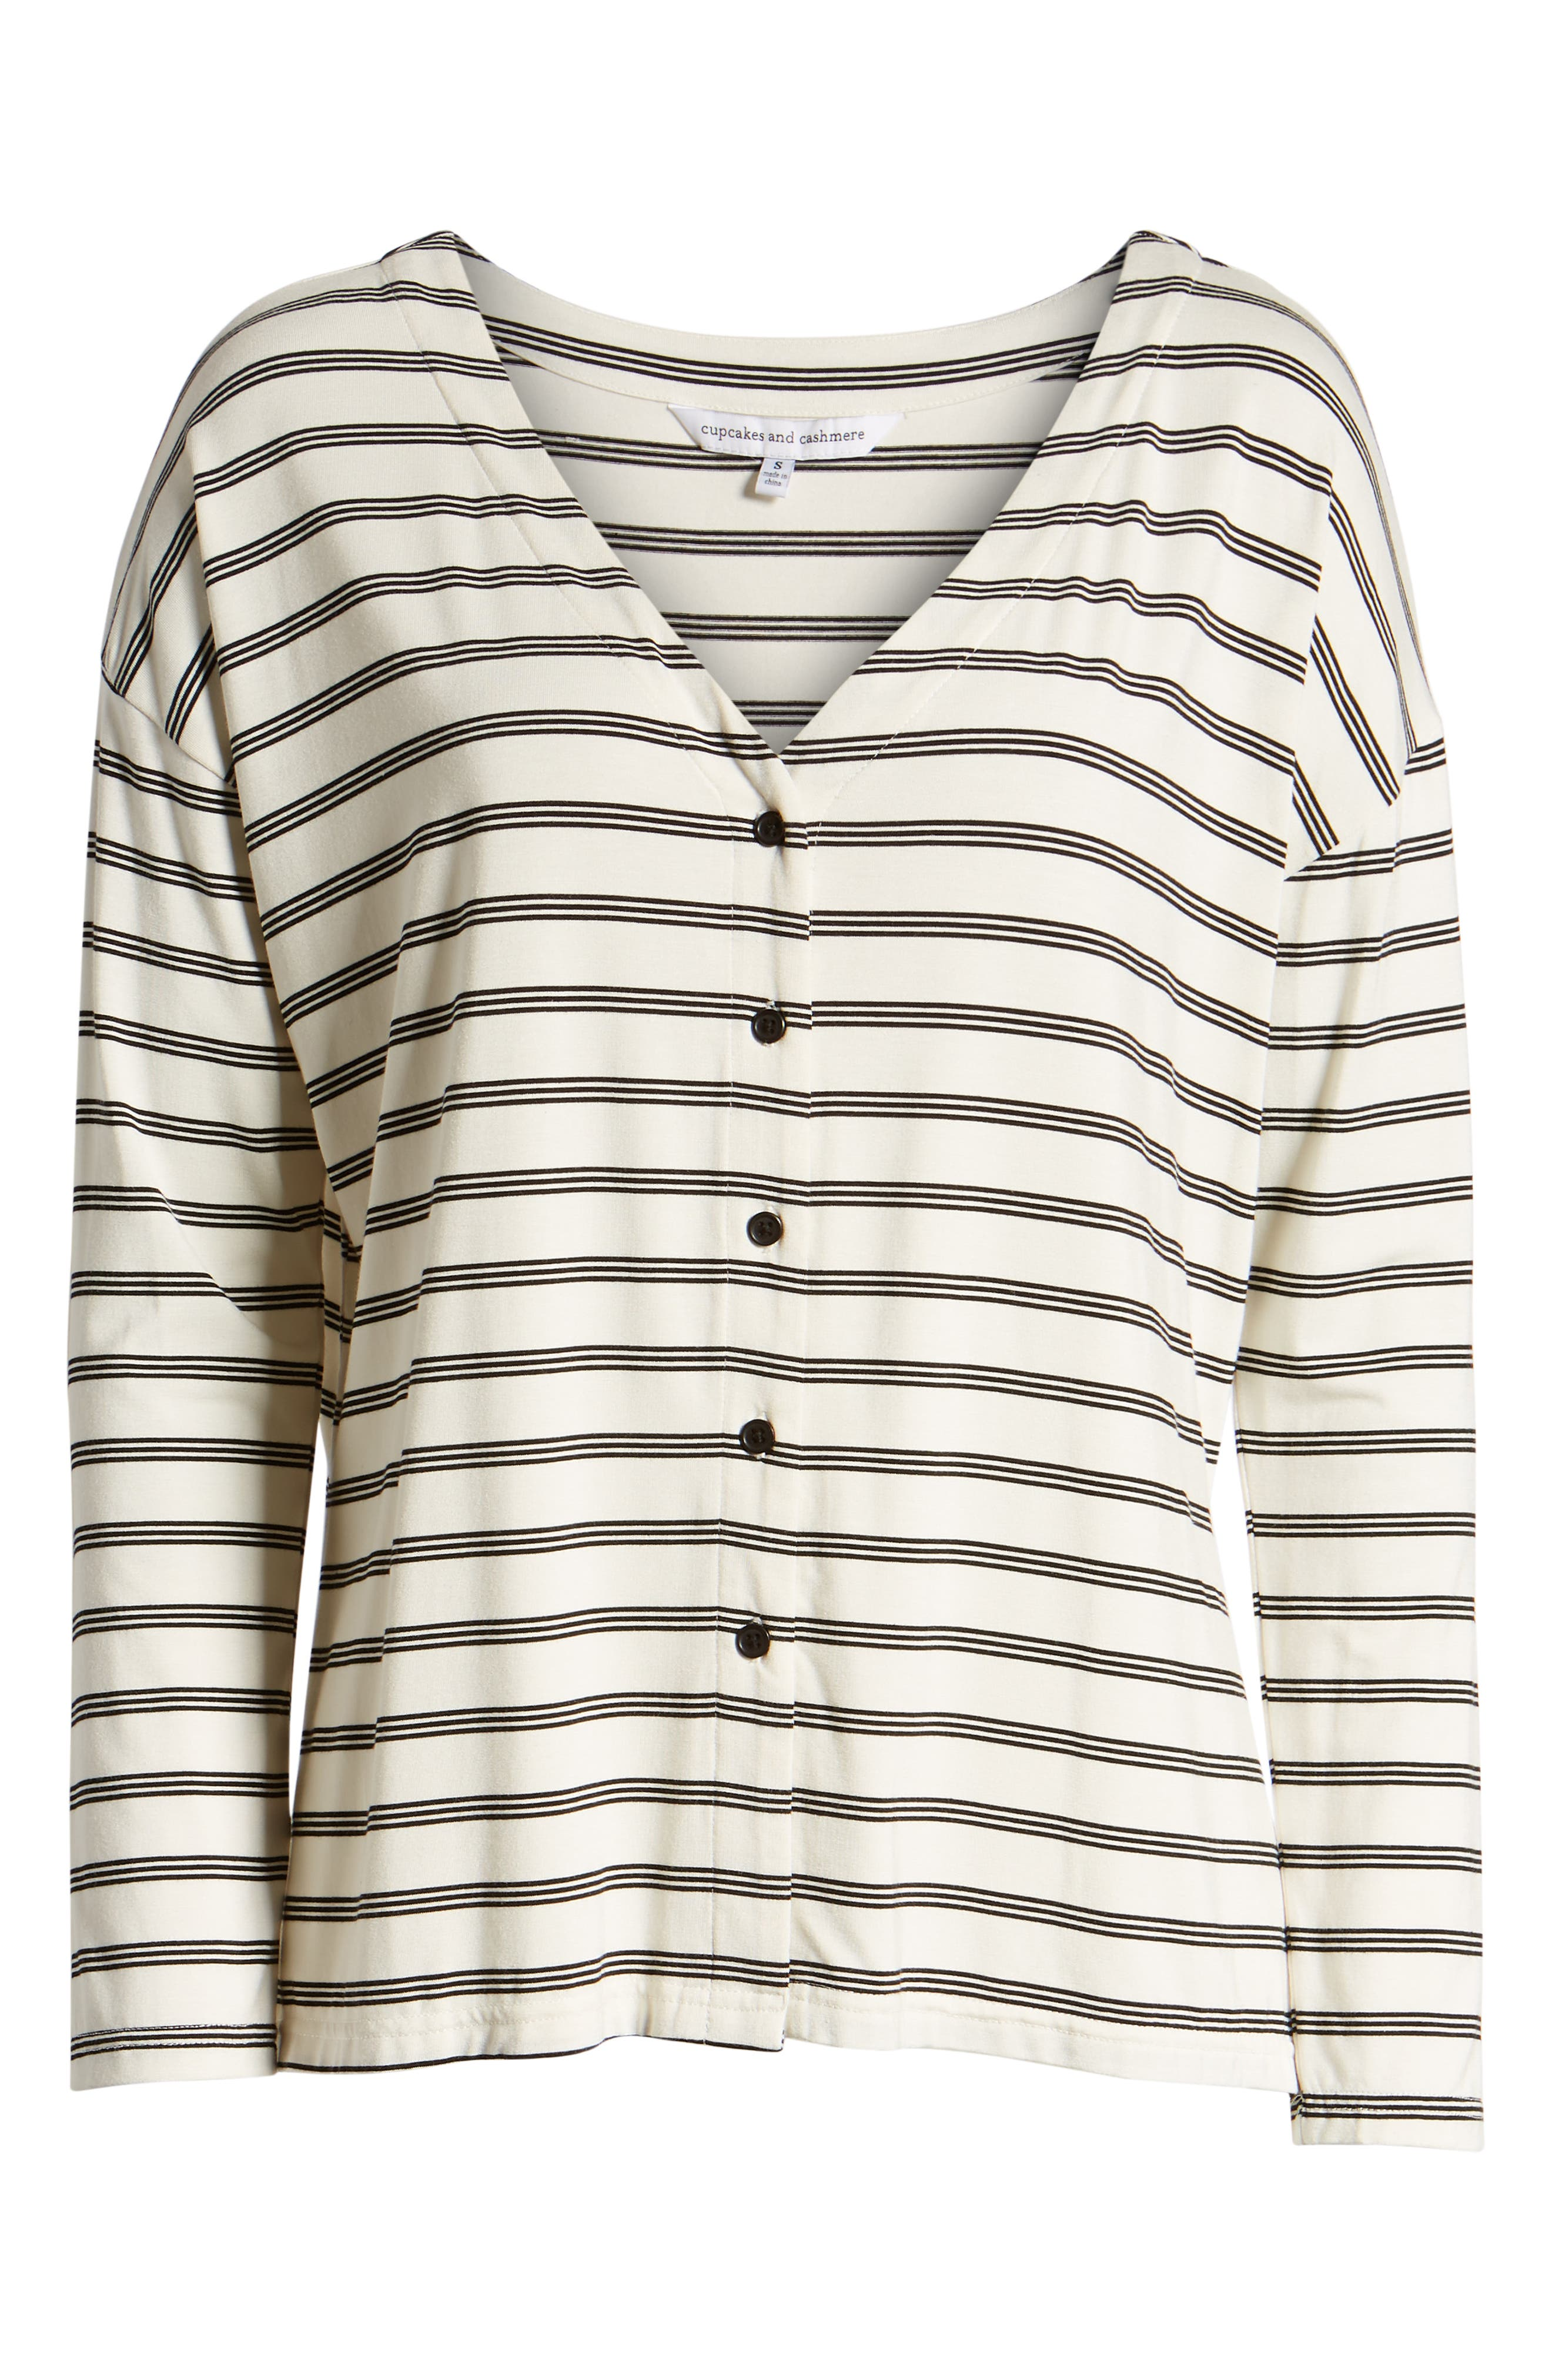 CUPCAKES AND CASHMERE,                             Roxanna Stripe Knit Top,                             Alternate thumbnail 6, color,                             IVORY